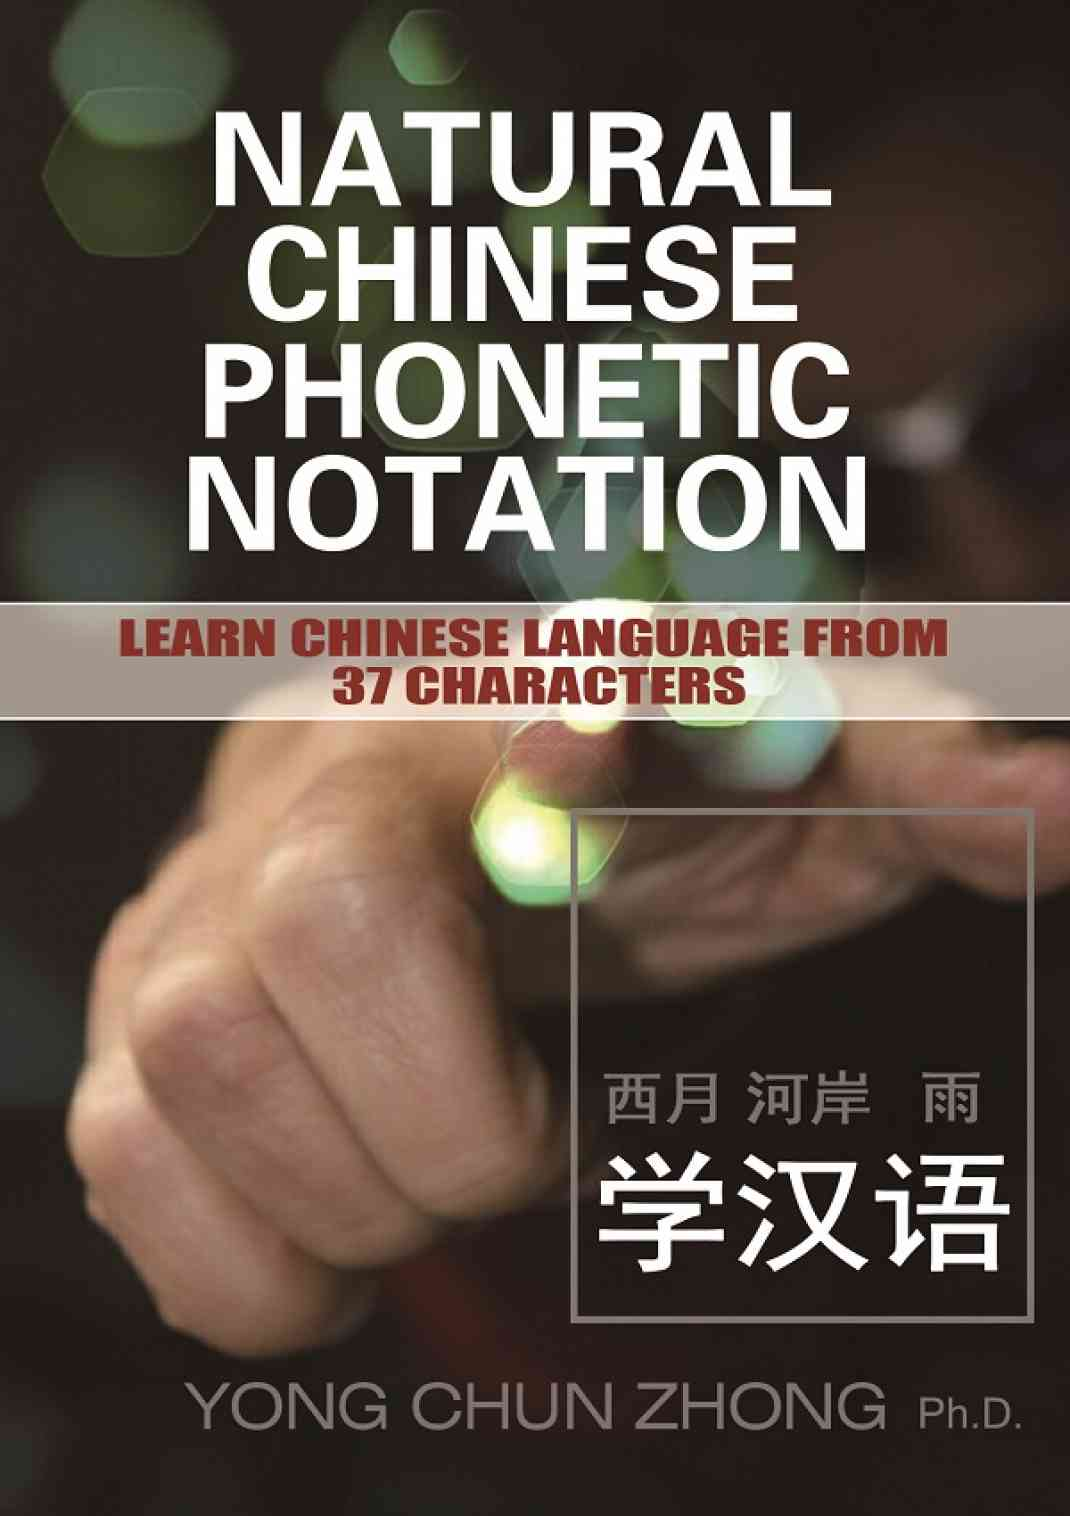 Natural chinese phonetic notation learn chinese language from 37 natural chinese phonetic notation learn chinese language from 37 characters biocorpaavc Gallery